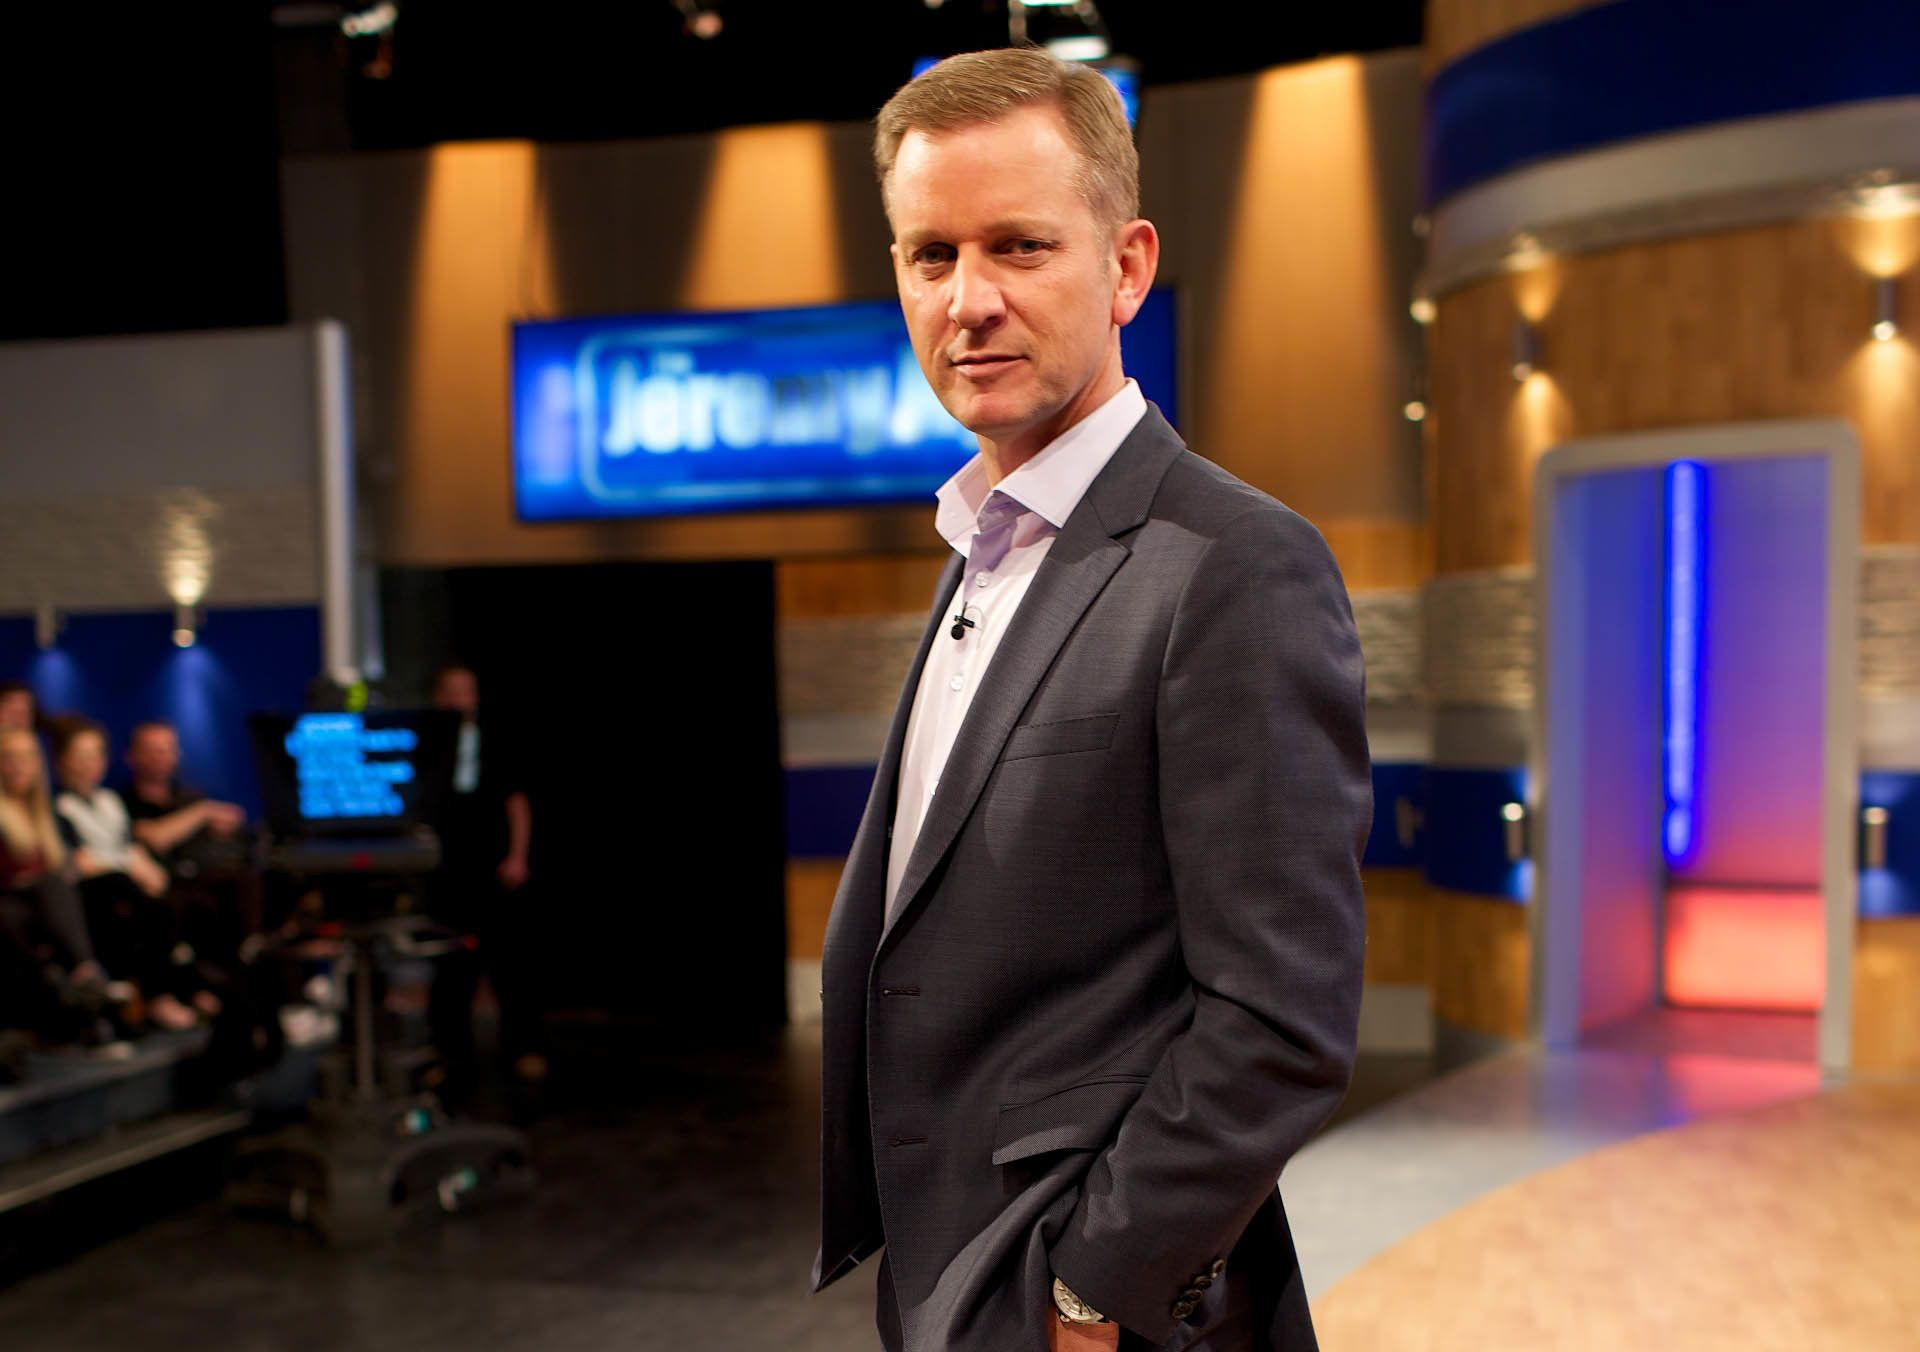 Ofcom Rap 'Jeremy Kyle Show' Over Sexually Explicit Easter